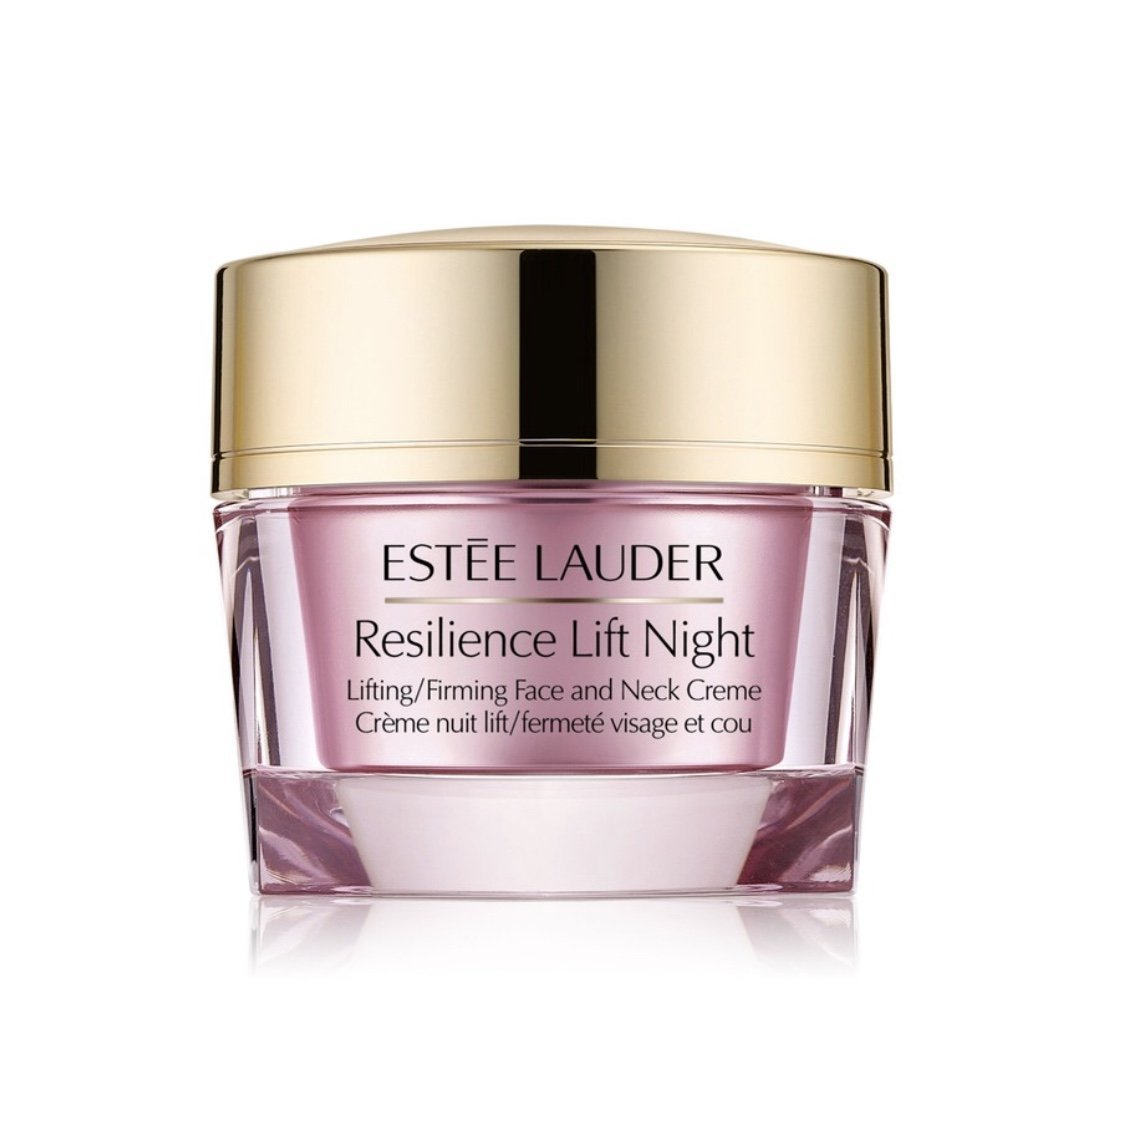 Estee Lauder Resilience Lift Night Lifting/Firming Face and Neck Creme (All Skin Types) - 30ml/1oz ...